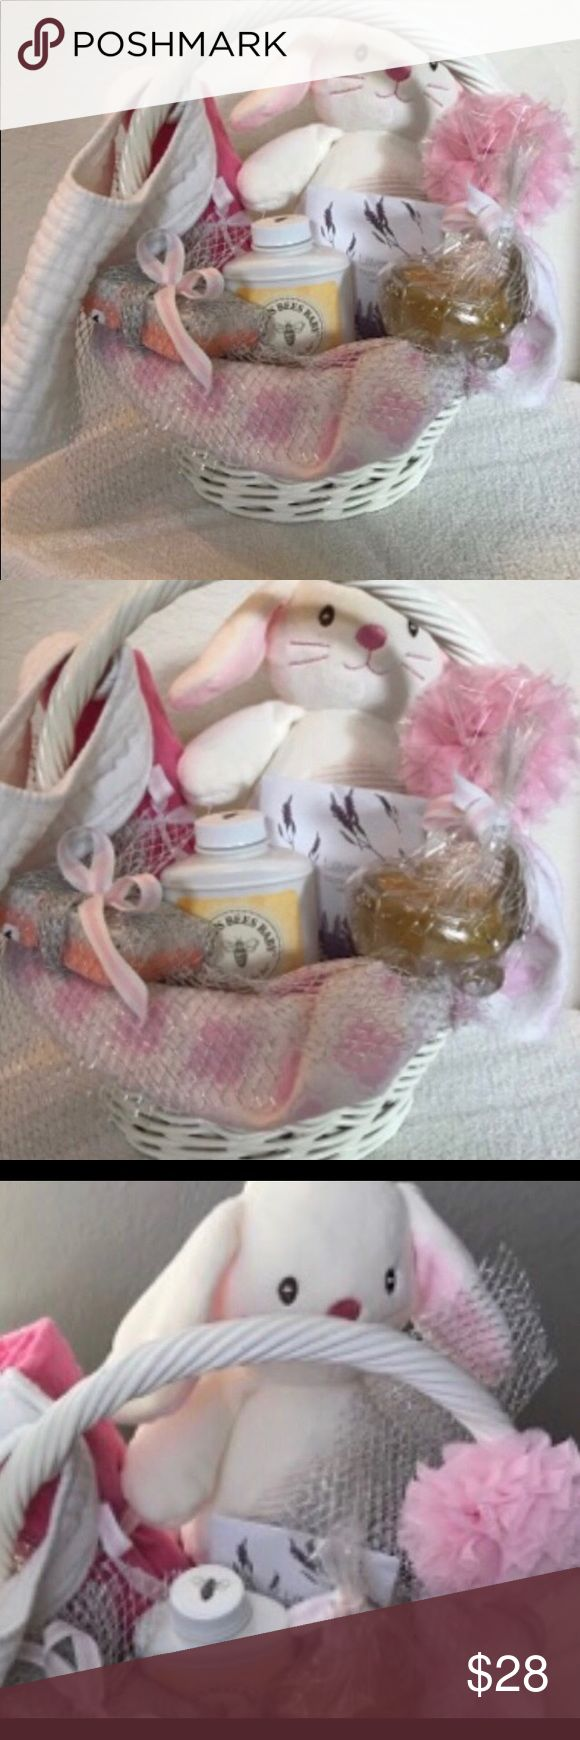 Newborn baby gift basket Welcome baby with this adorable white wicker basket! Lined with a receiving blanket, includes homemade peach and goat's milk soap, a plush toy, Burt's Bee talc-free powder, a bees wax candle (in a glass baby carriage), a cotton bib and stylish headband, scented with a lavender sachet. savvy gift box Other